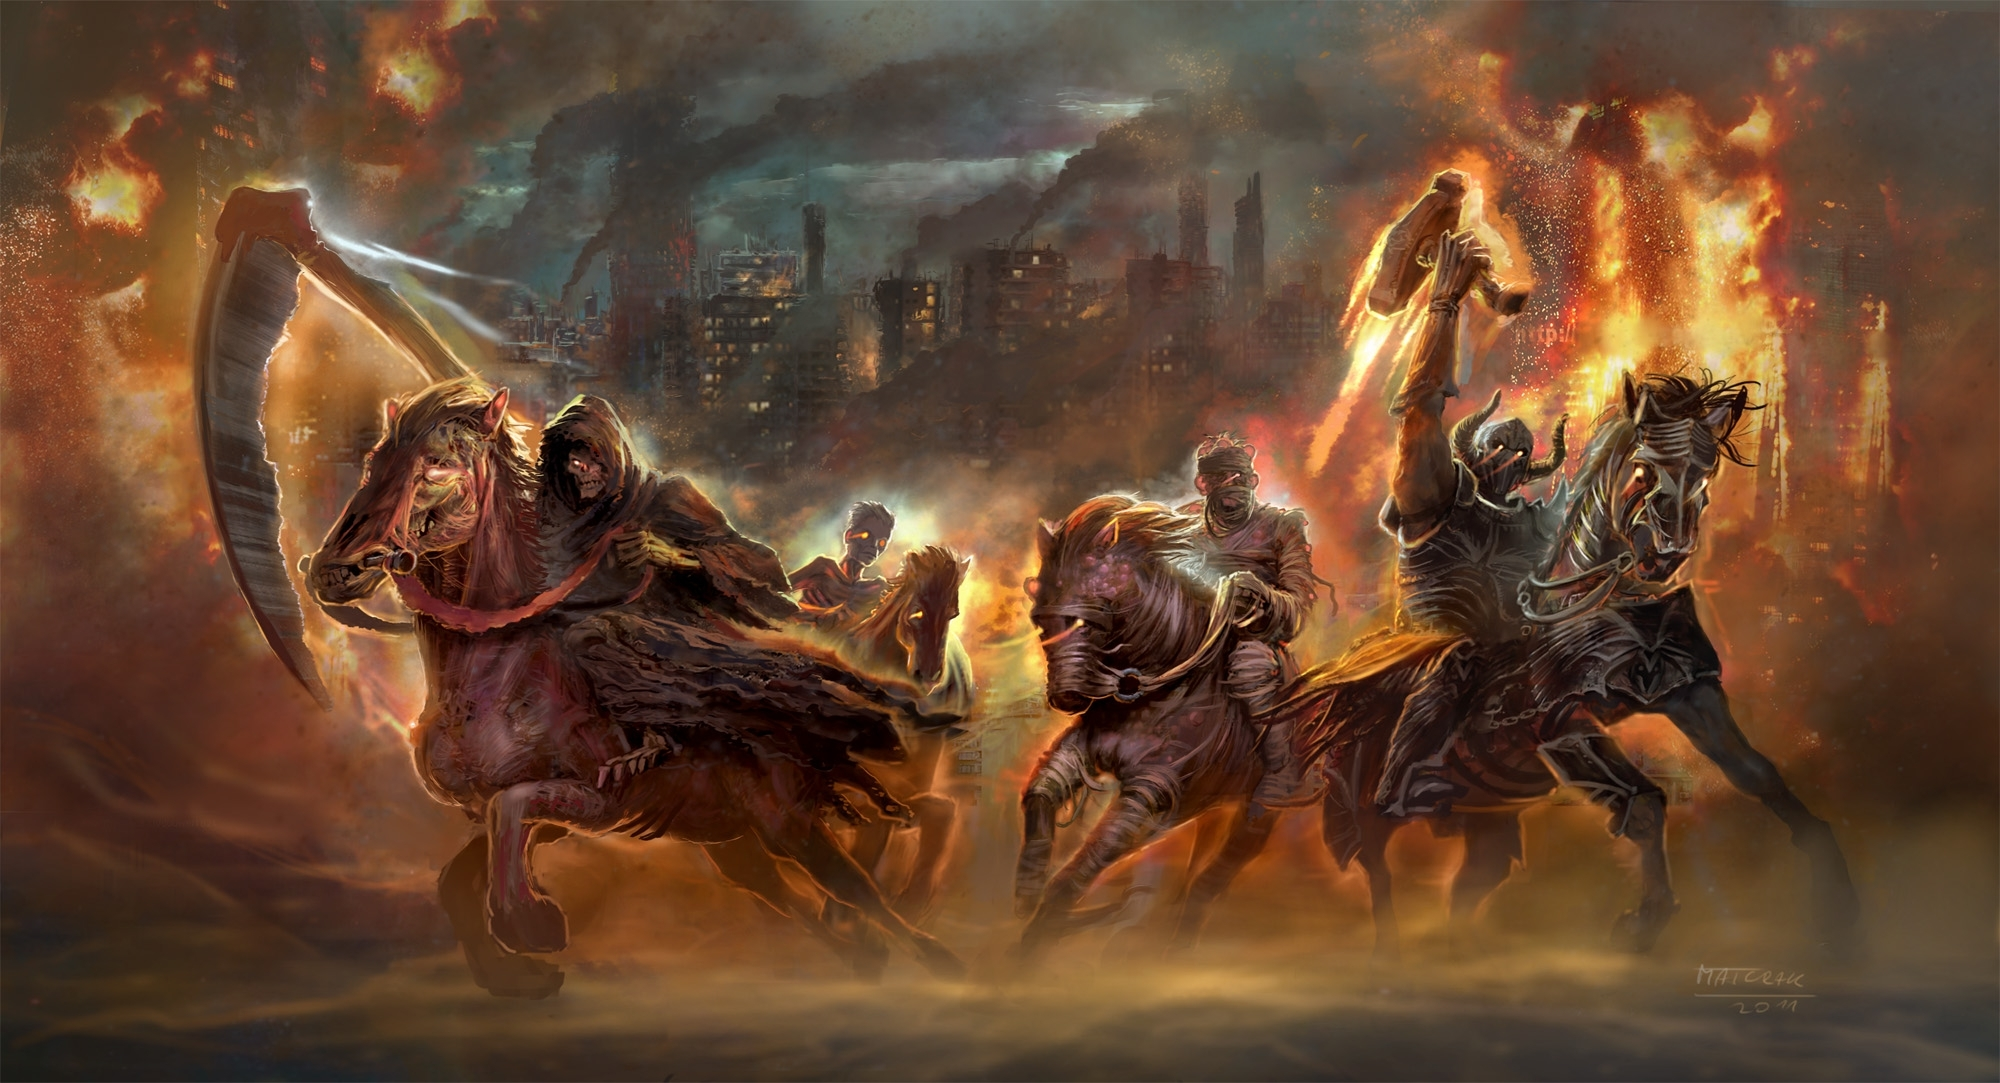 6 four horsemen of the apocalypse hd wallpapers | background images